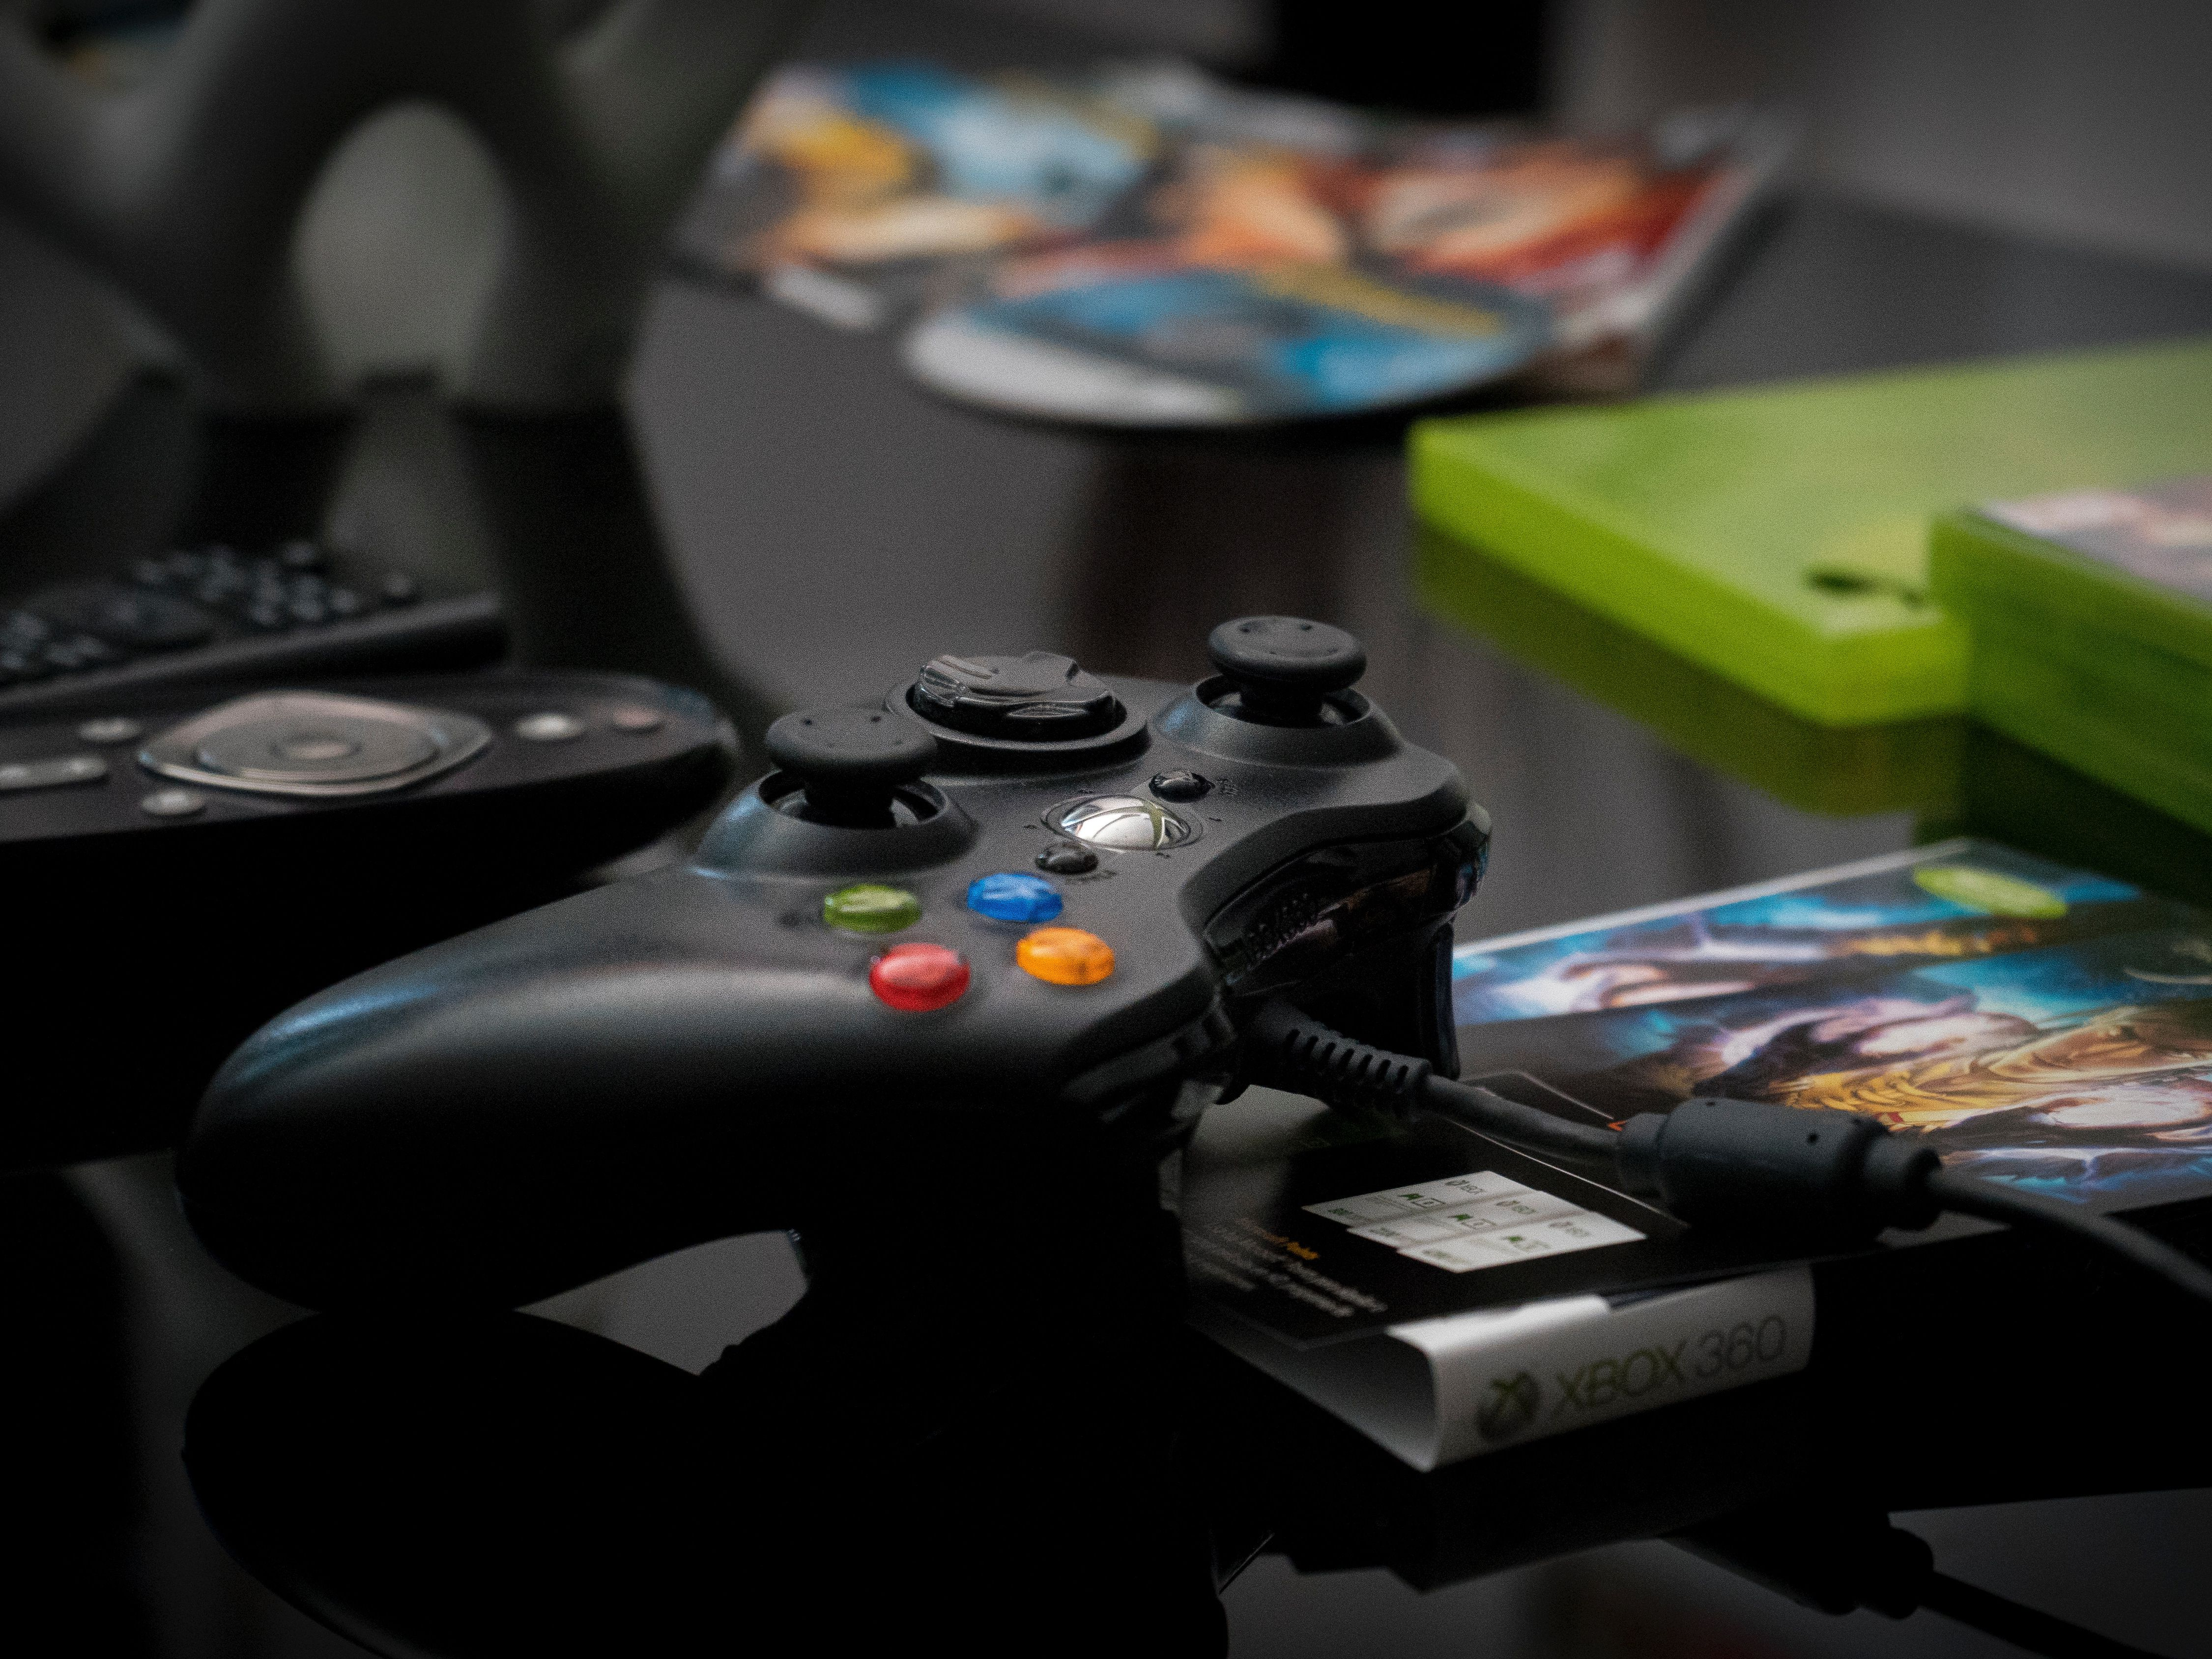 How to Connect an Xbox 360 to Your TV